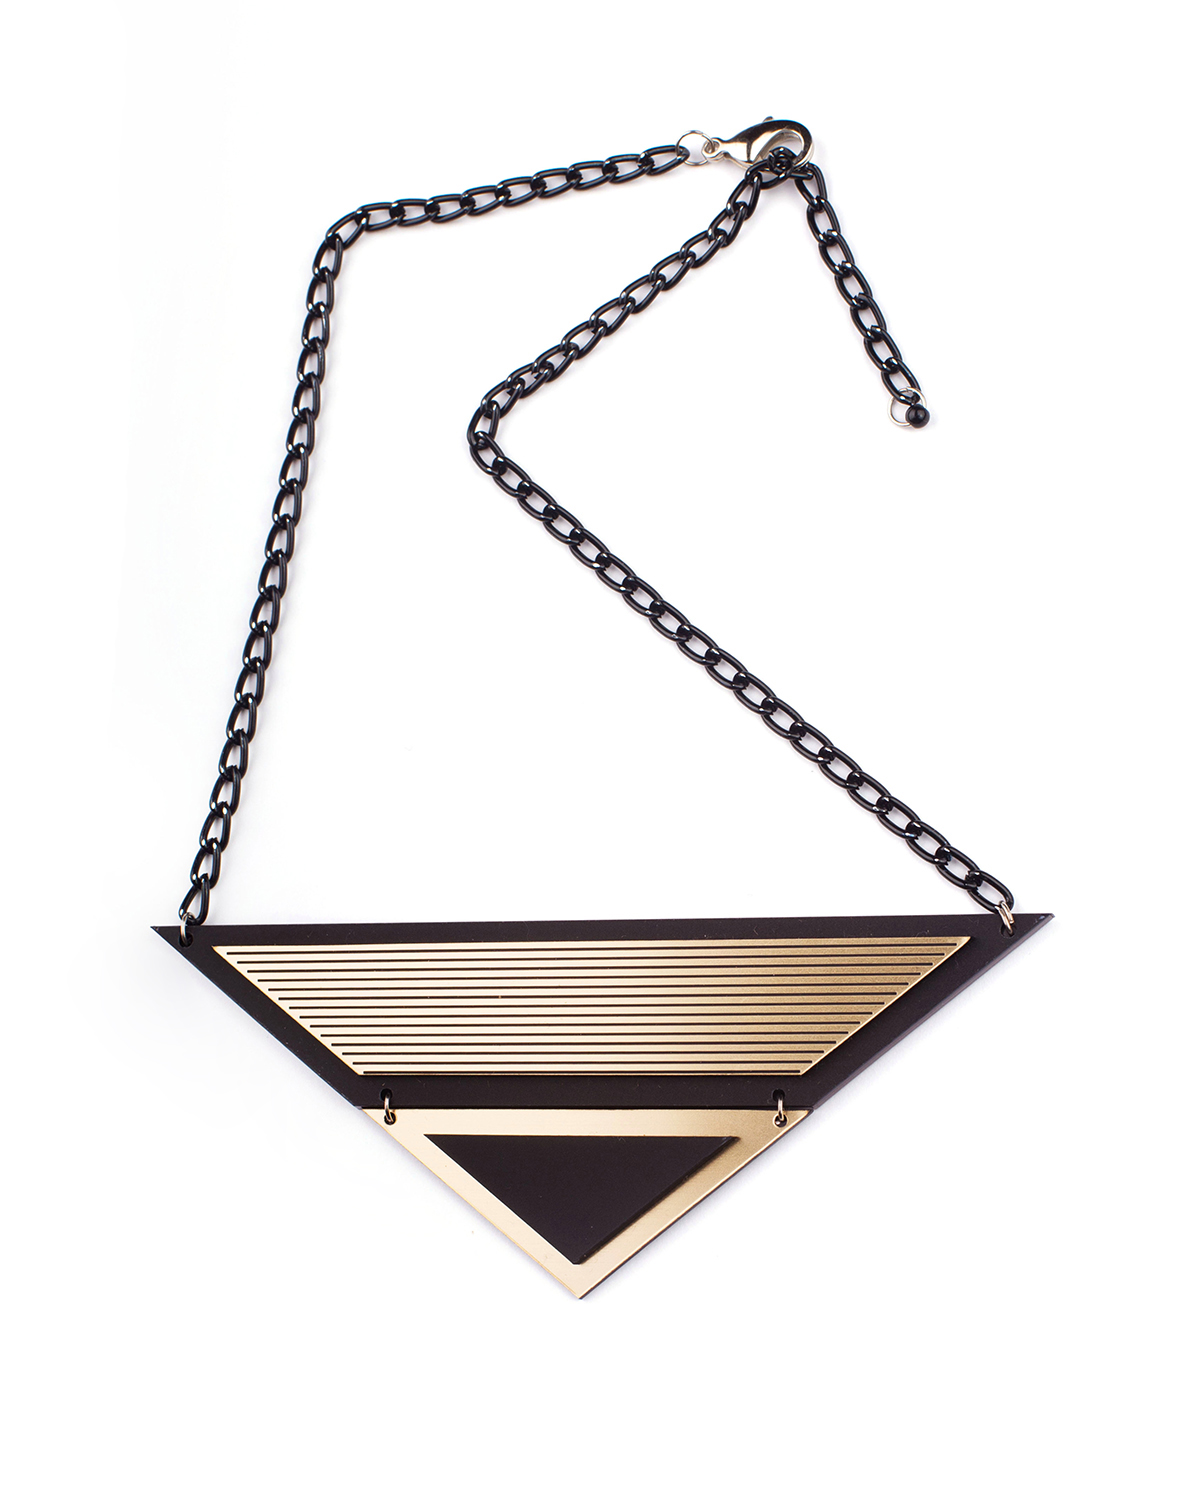 London S necklace | Lasercut jewelry | Rename | Made in Belgrade